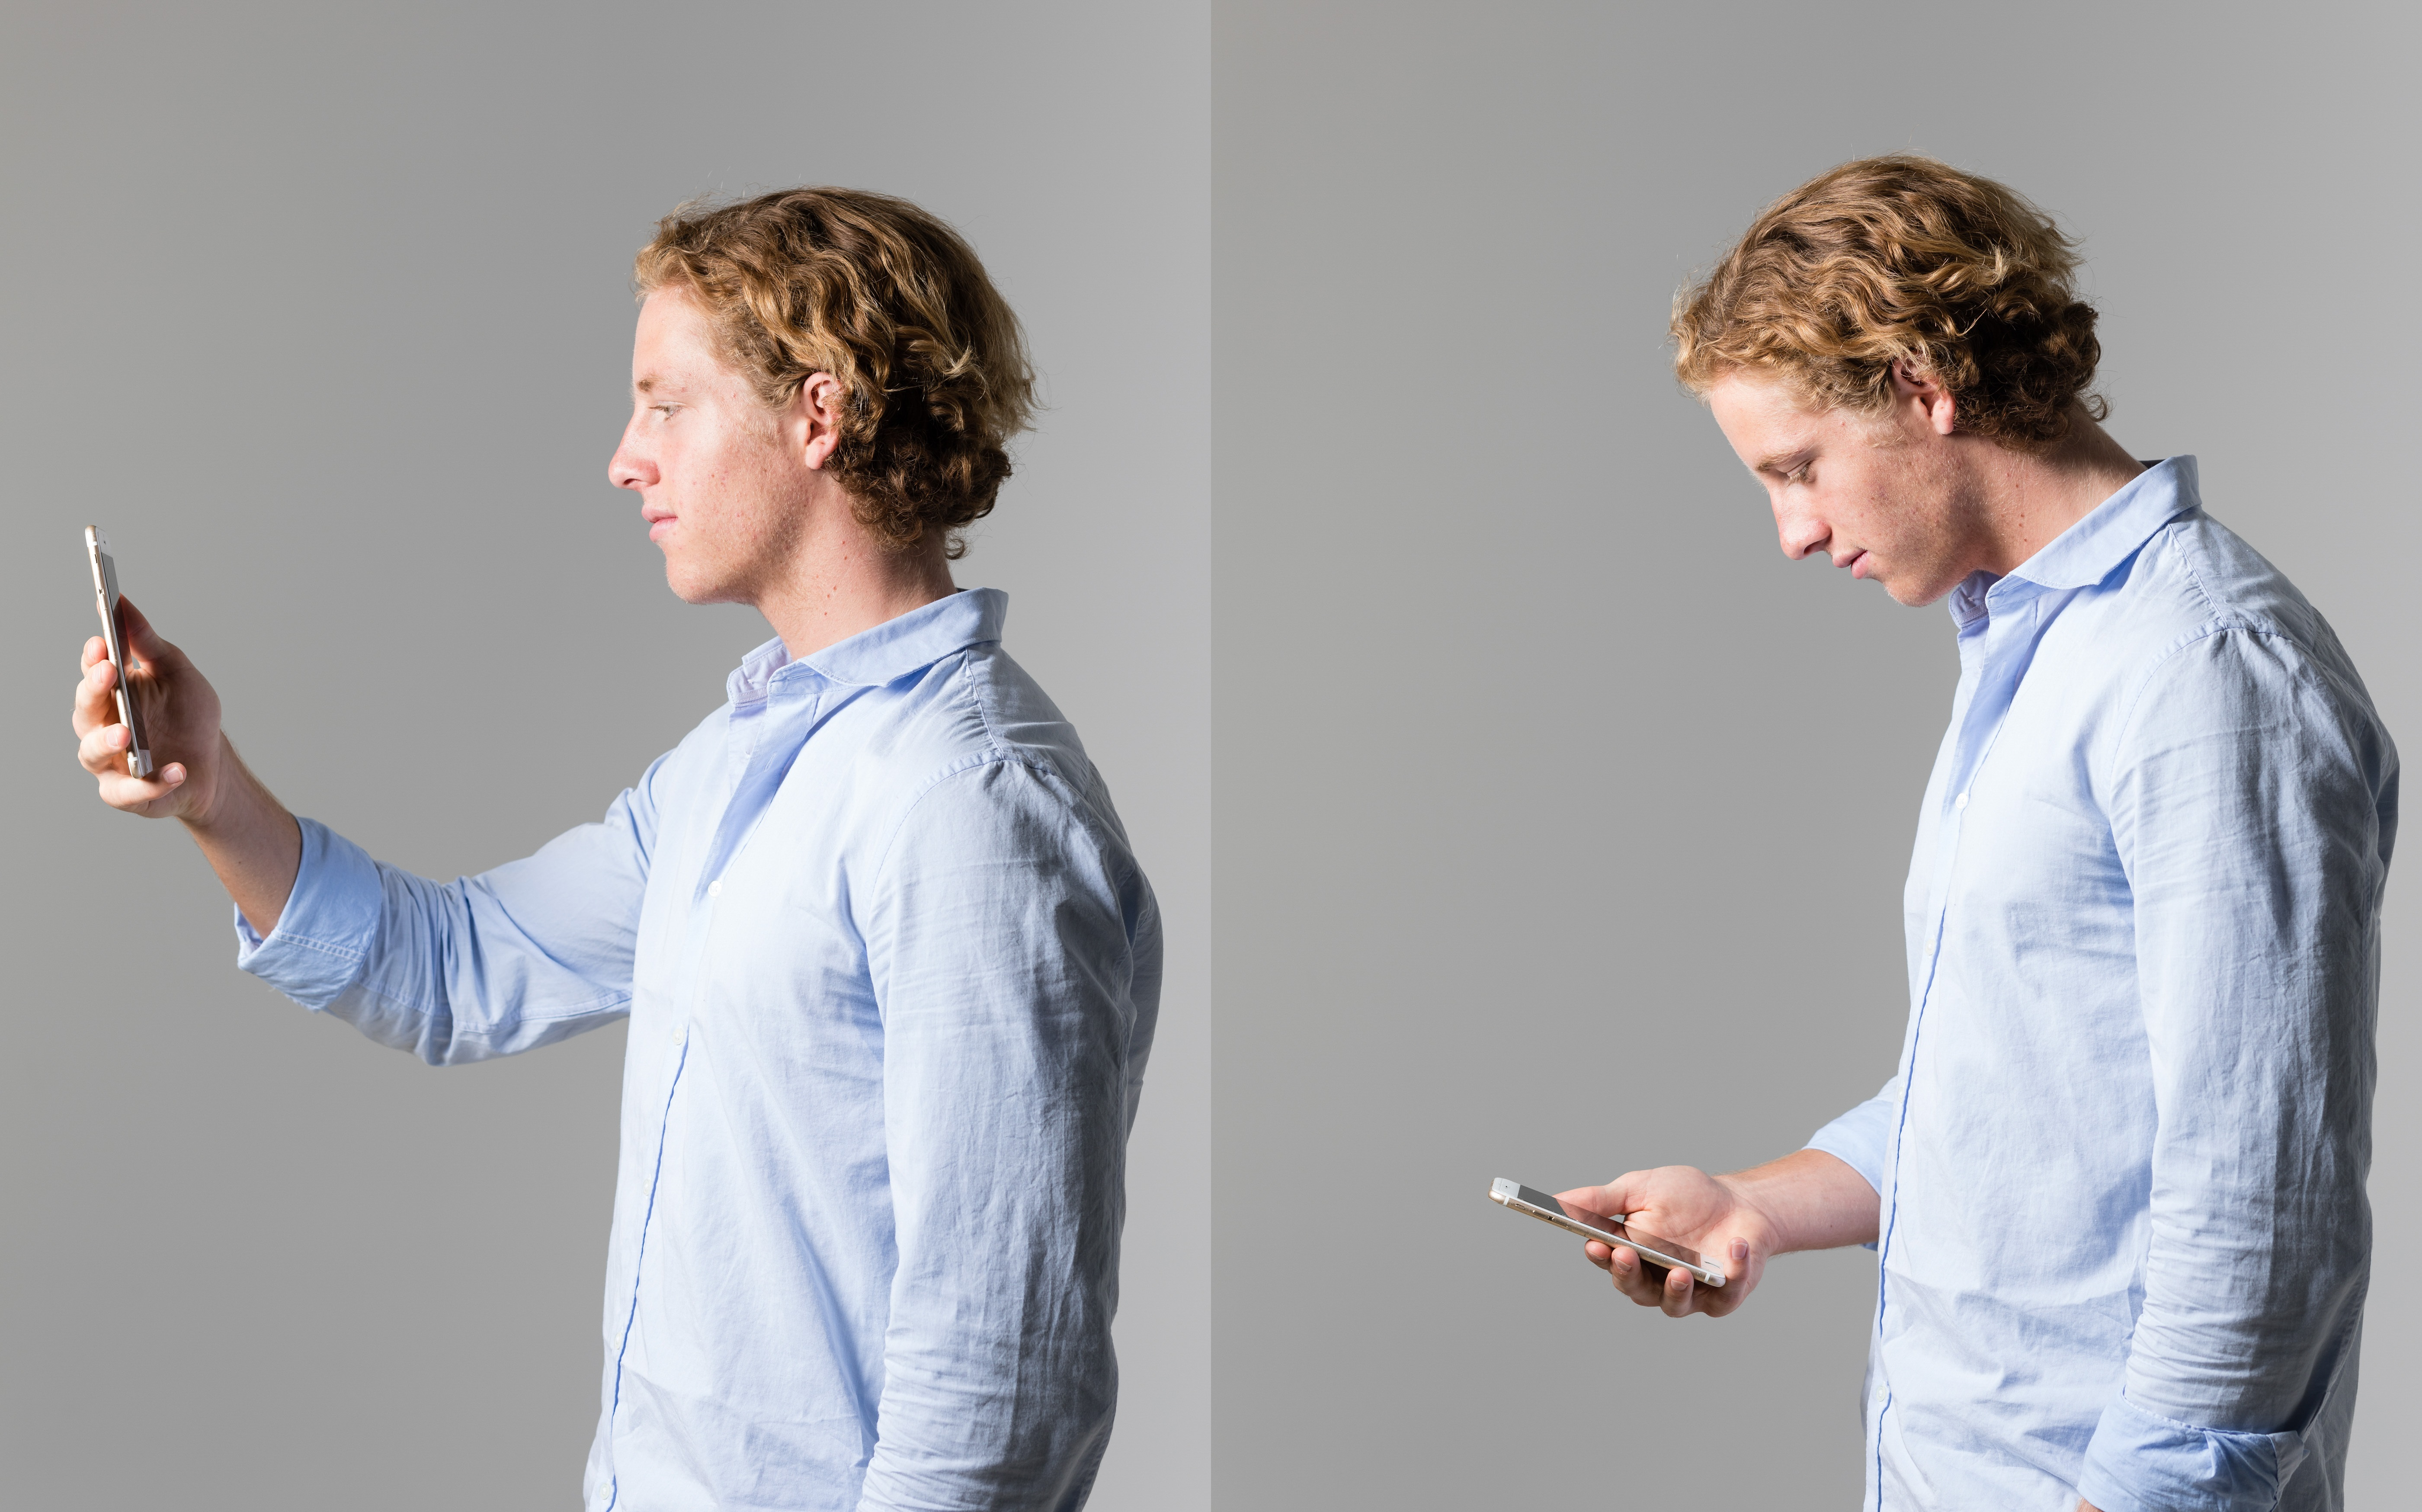 Two panel image. Left: a young man in a blue shirt holds a smart phone up in front of his face. Right: the same man holds the phone down at waist height demonstrating the neck curvature that results from looking downwards.